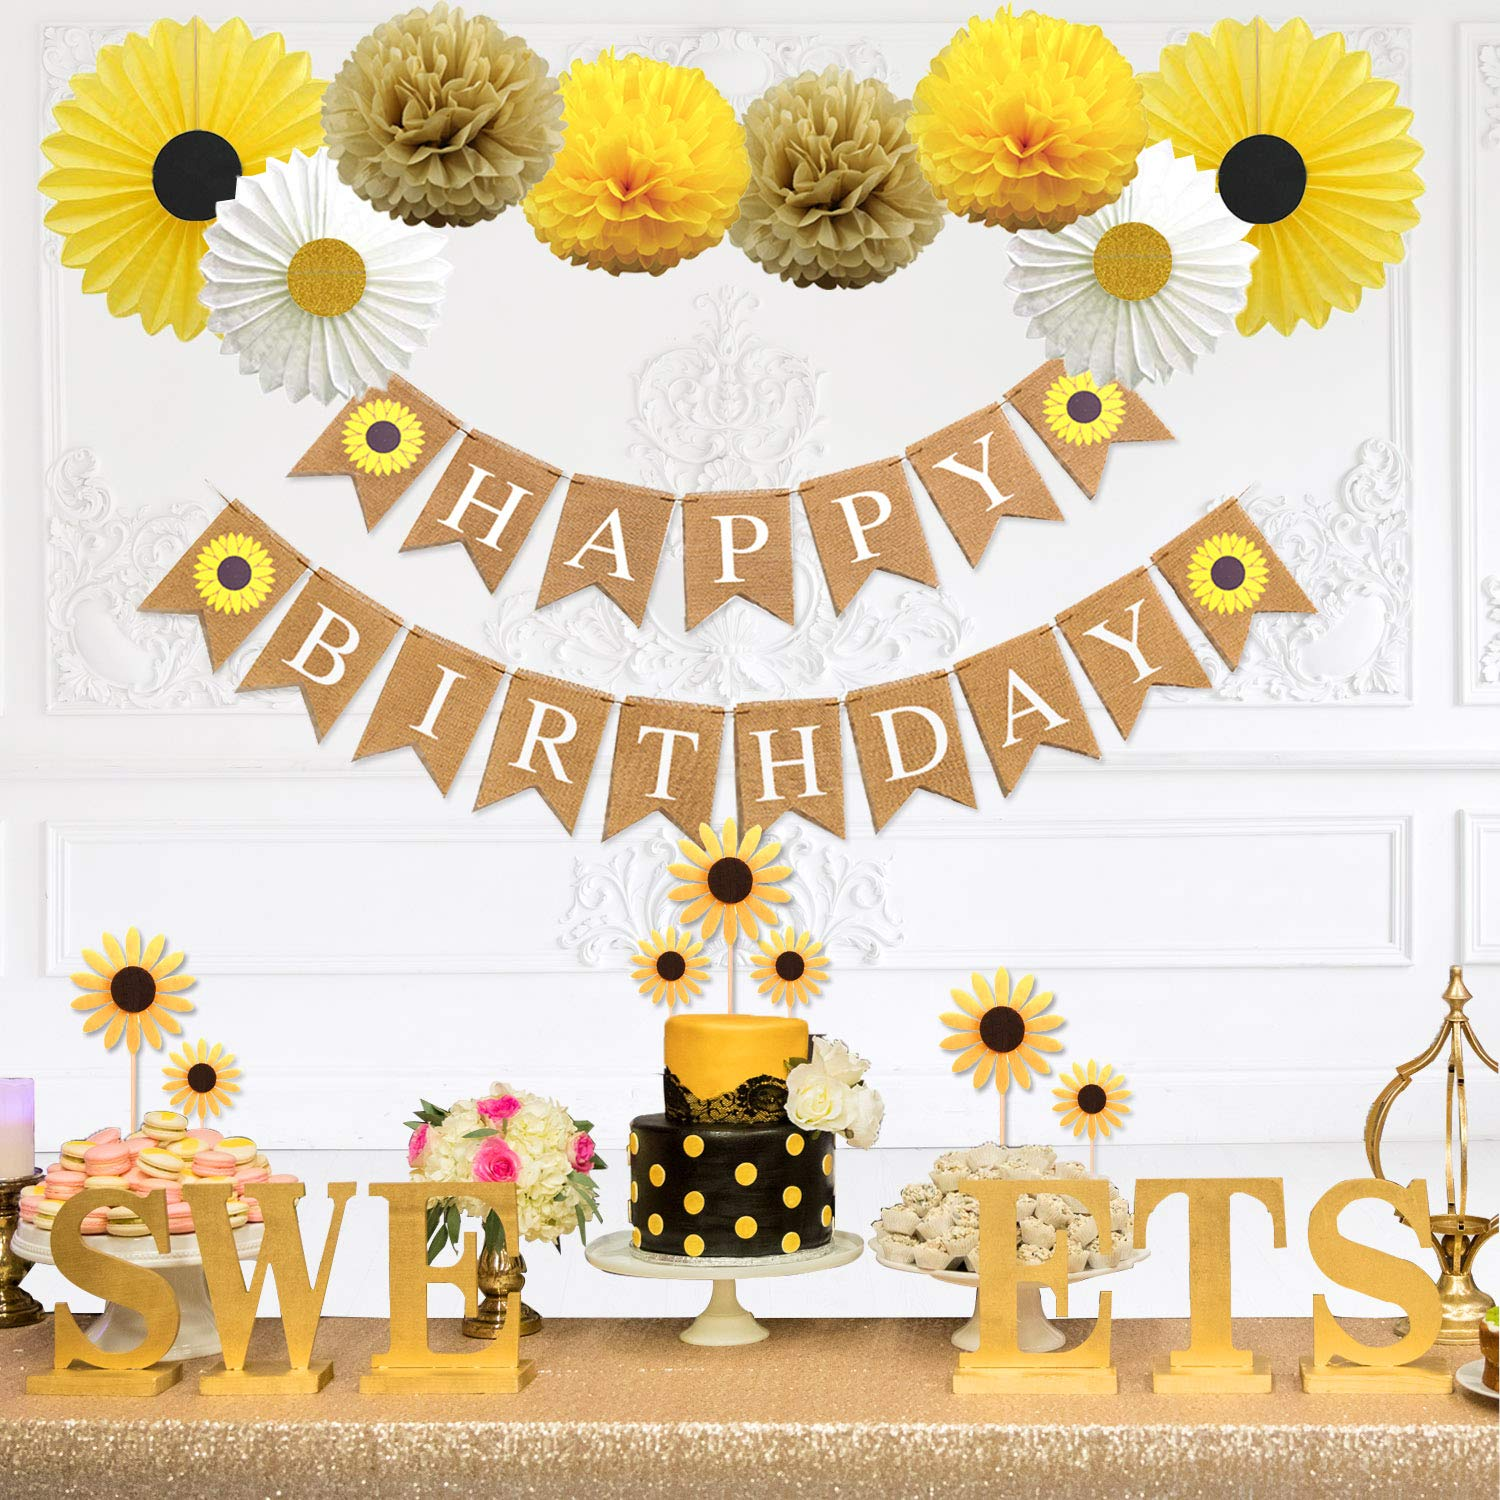 Party Inspo Sunflower Birthday Party Decorations Supplies Kit, Sunflower Happy Birthday Banner, Yellow Sunflowers Cupcake Toppers, Tissue Paper Fans, Pom Poms by Party Inspo